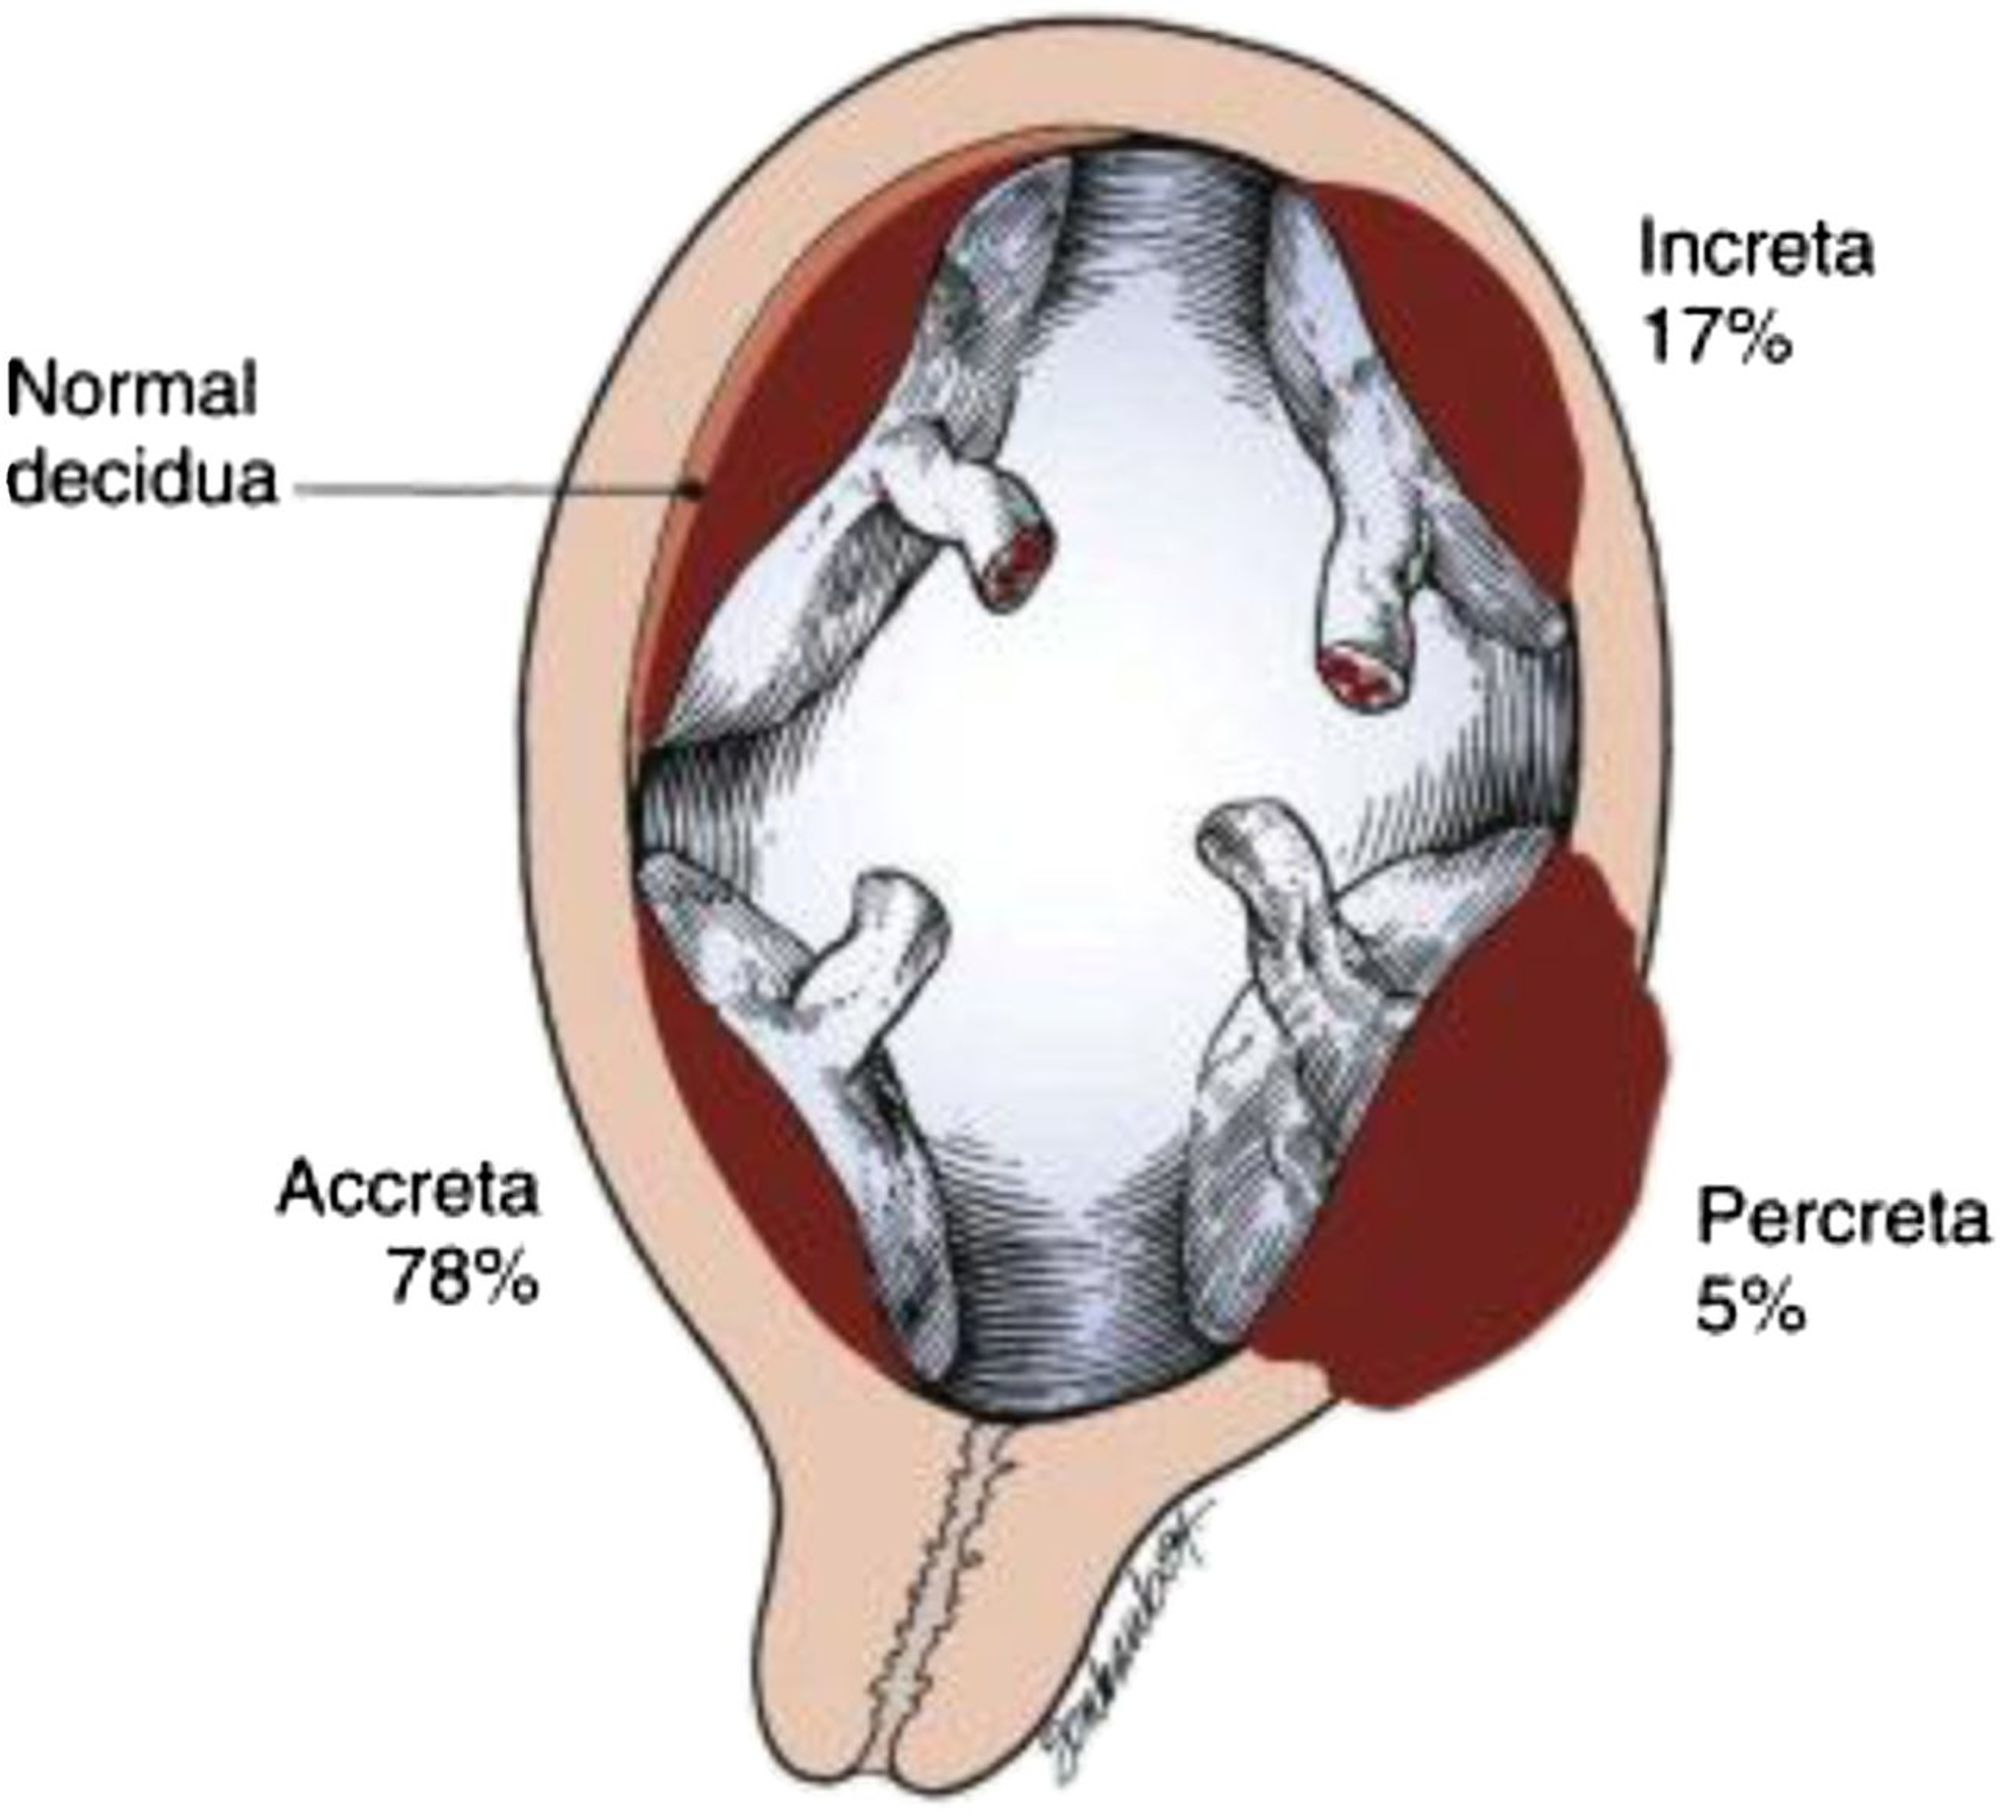 placenta acrreta Placenta accreta is an abnormally firm and deep attachment of the placenta to the uterine wall it's actually an umbrella term for three variants, depending on how deeply the placental cells invade: placenta accreta, placenta increta and placenta percreta.